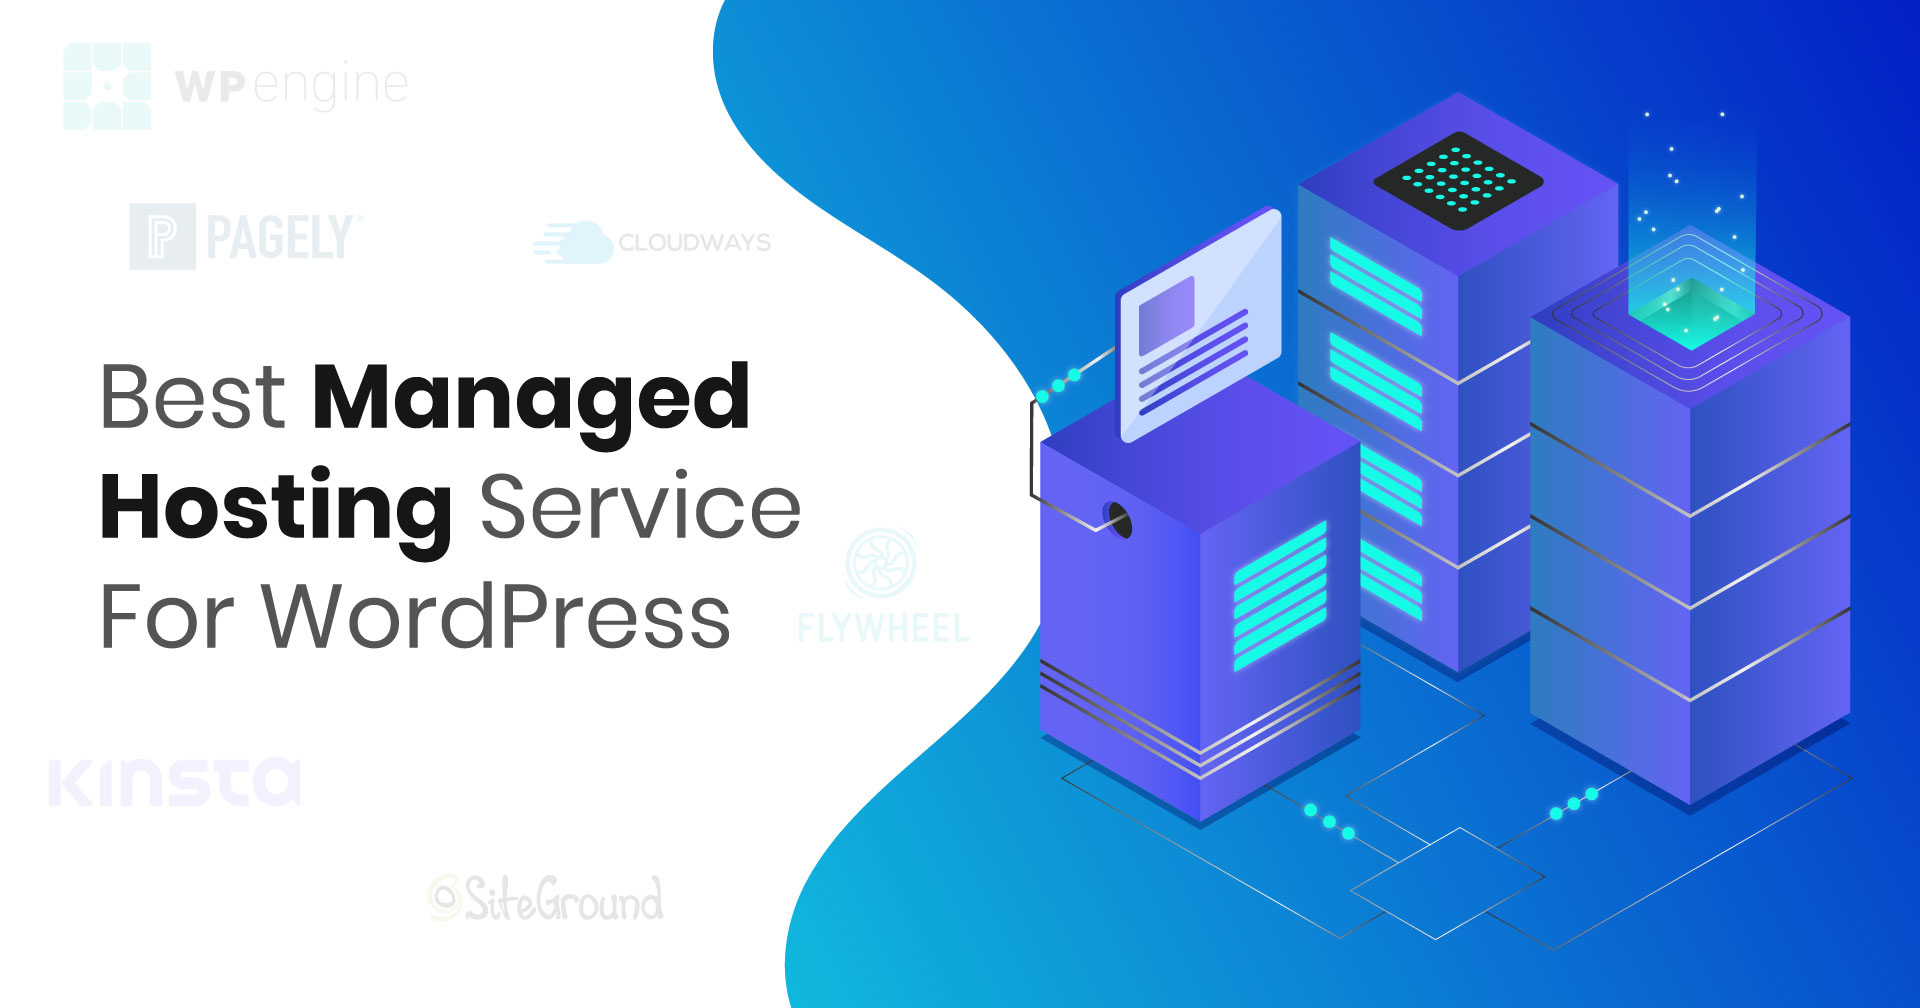 6 Best Managed Hosting Services For WordPress